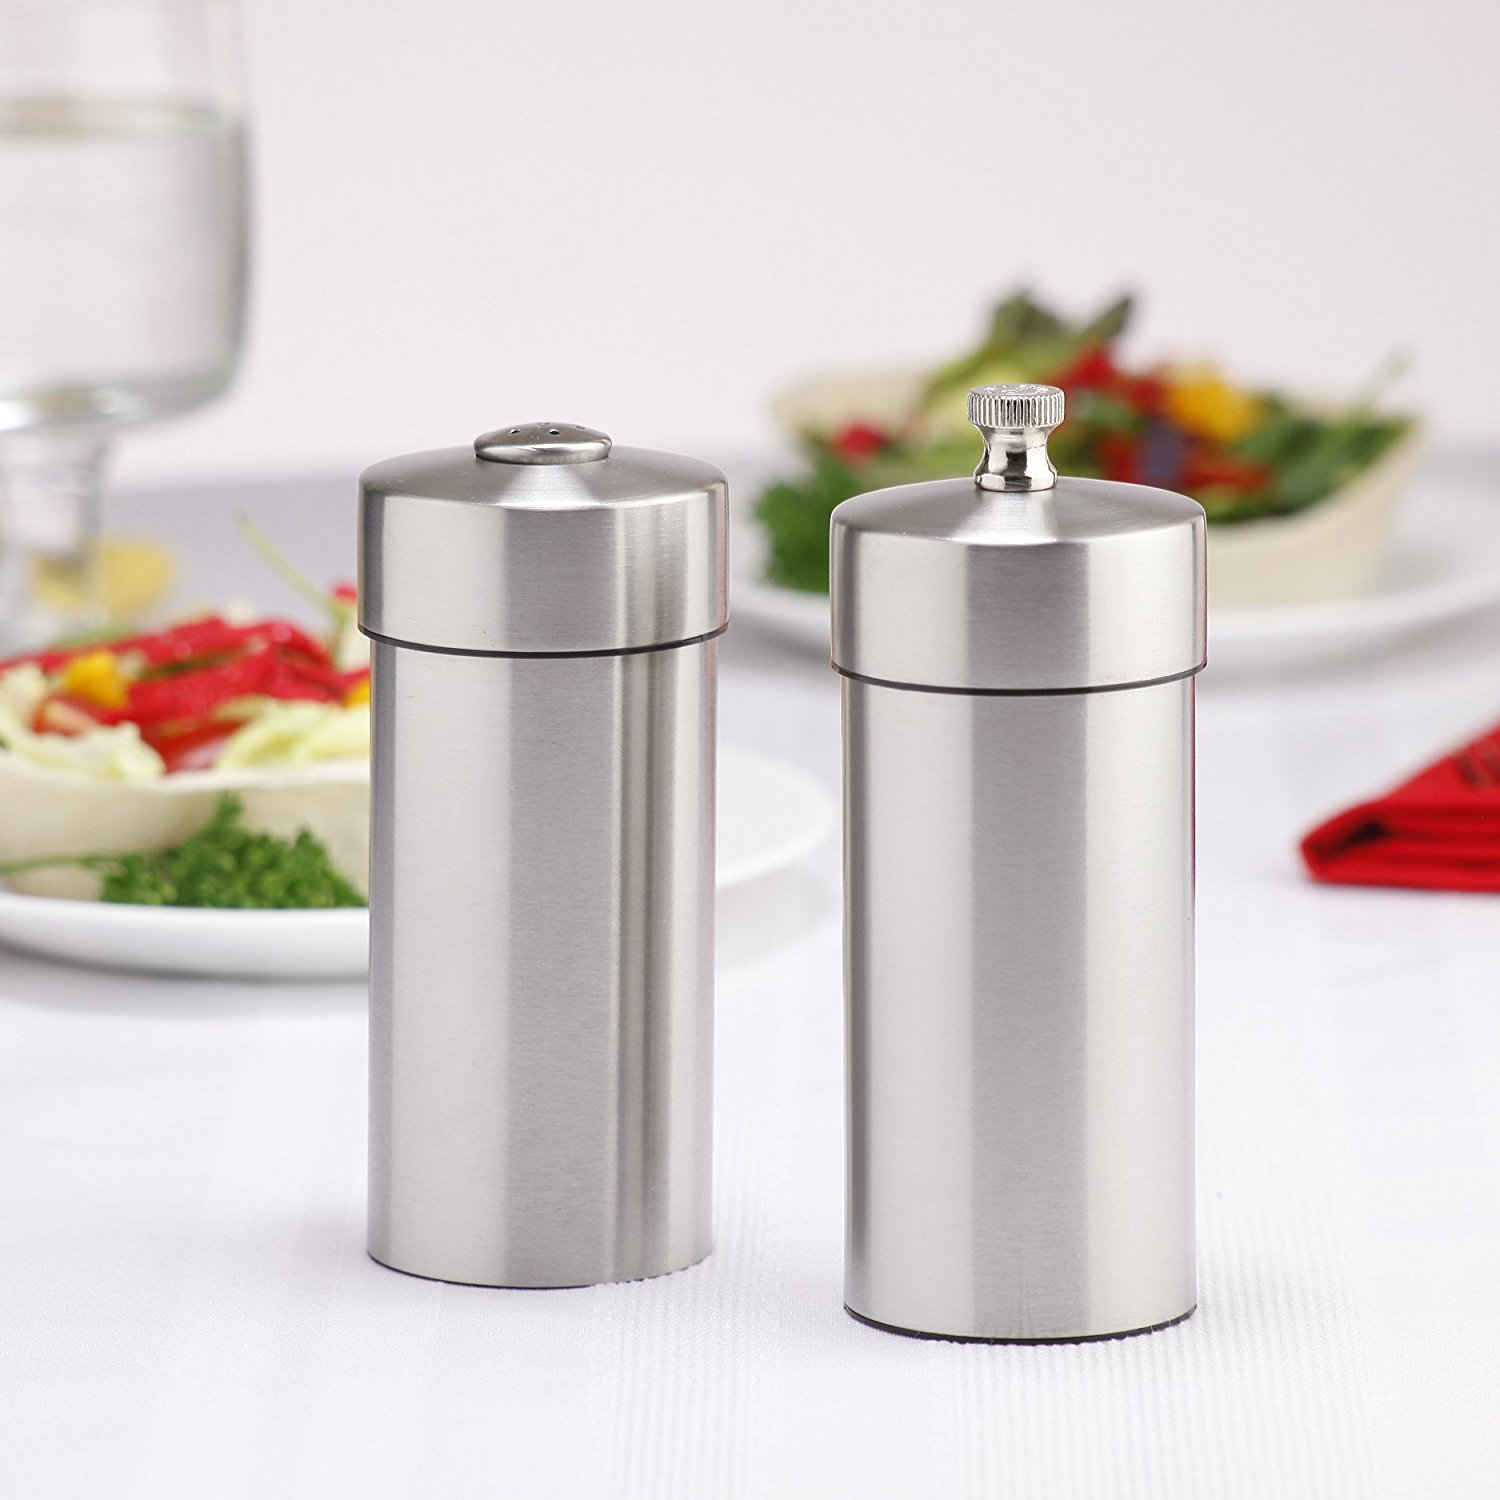 Chef Specialties 29900 5. 5 Inch 14 cm FuturaBrushed Stainless Pepper Mill Salt Shaker Set by Chef Specialties Company